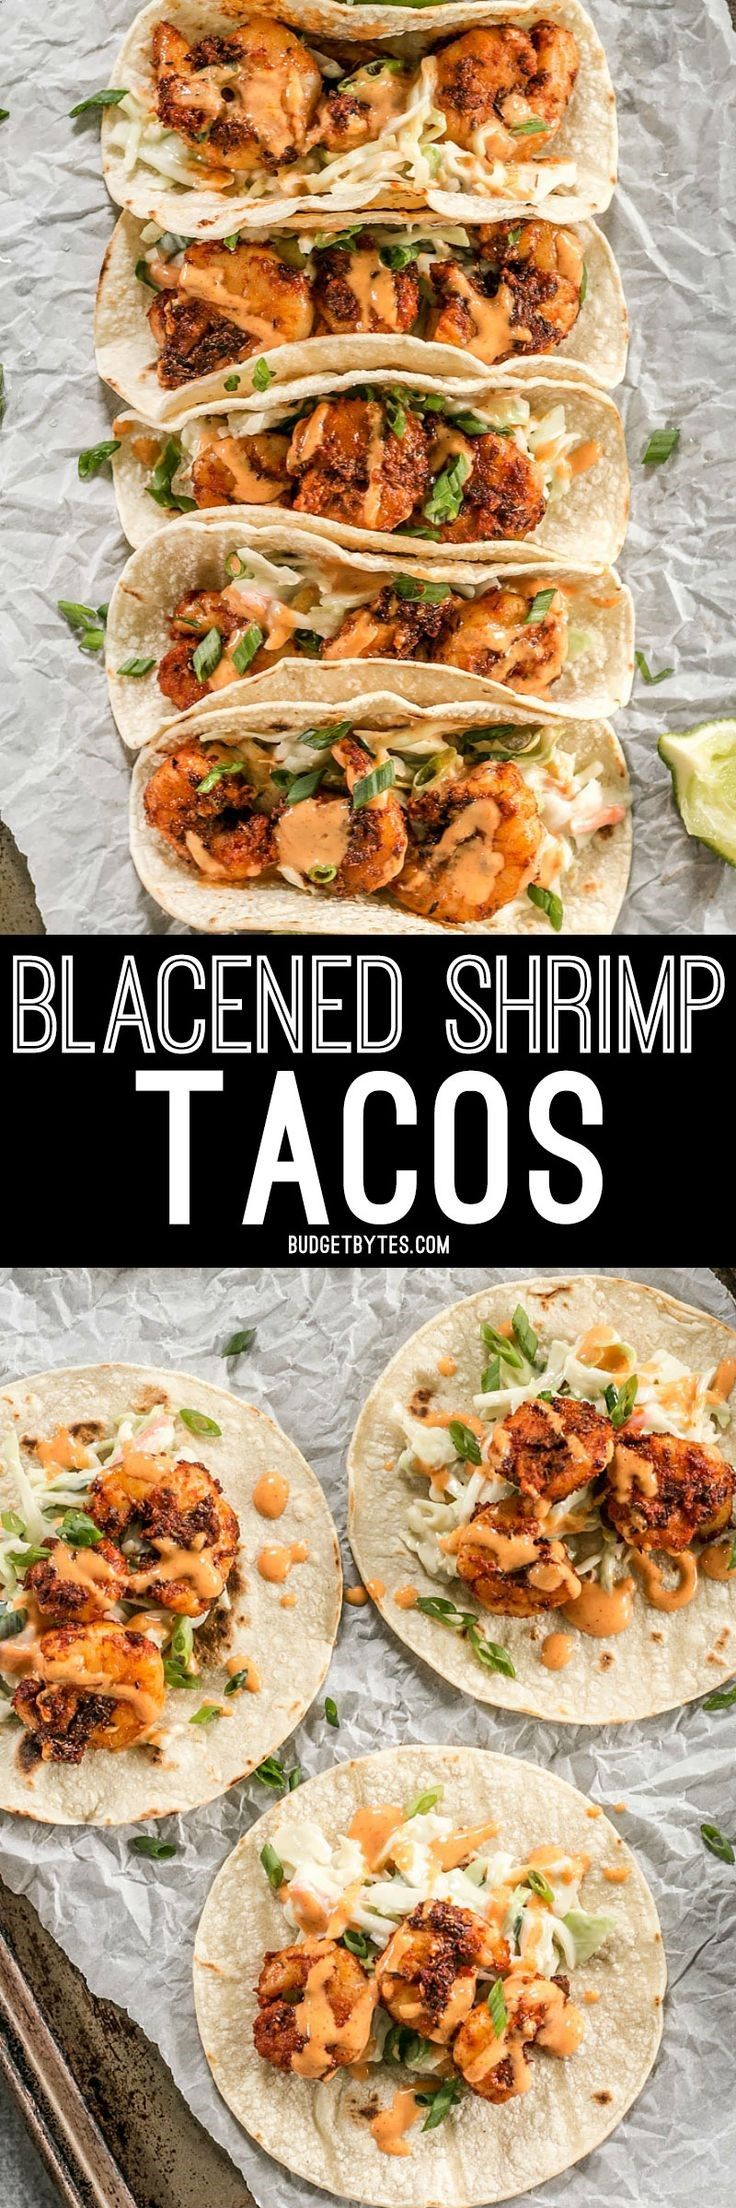 Smoky and spicy shrimp, sweet and tangy slaw, and a zesty garlic lime sauce make these Blackened Shrimp Tacos seriously delicious! Budget Bytes   Delicious Recipes for Small Budgets